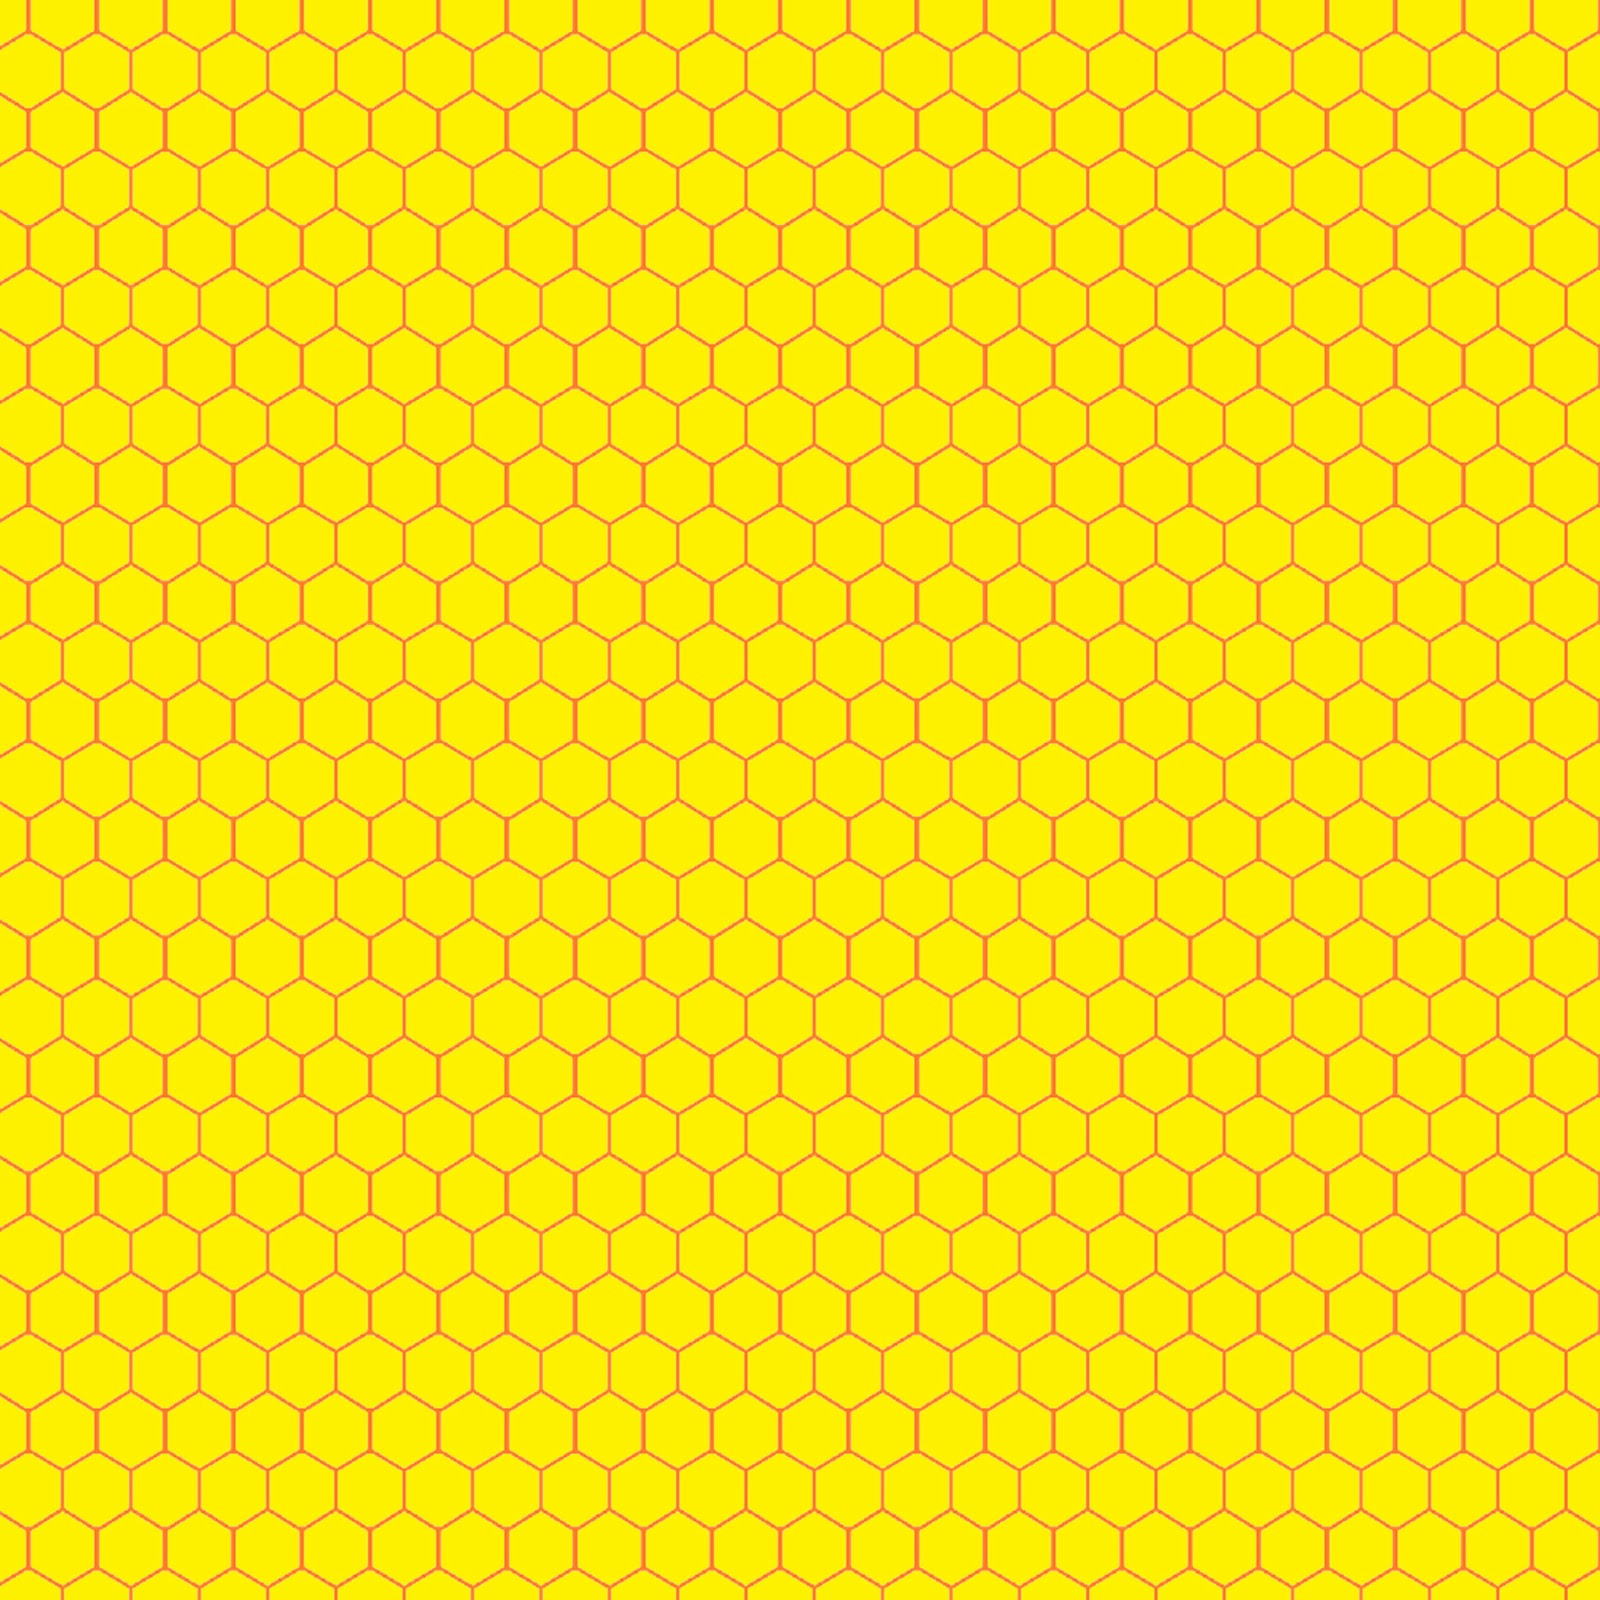 Neon Yellow Backgrounds - WallpaperSafari